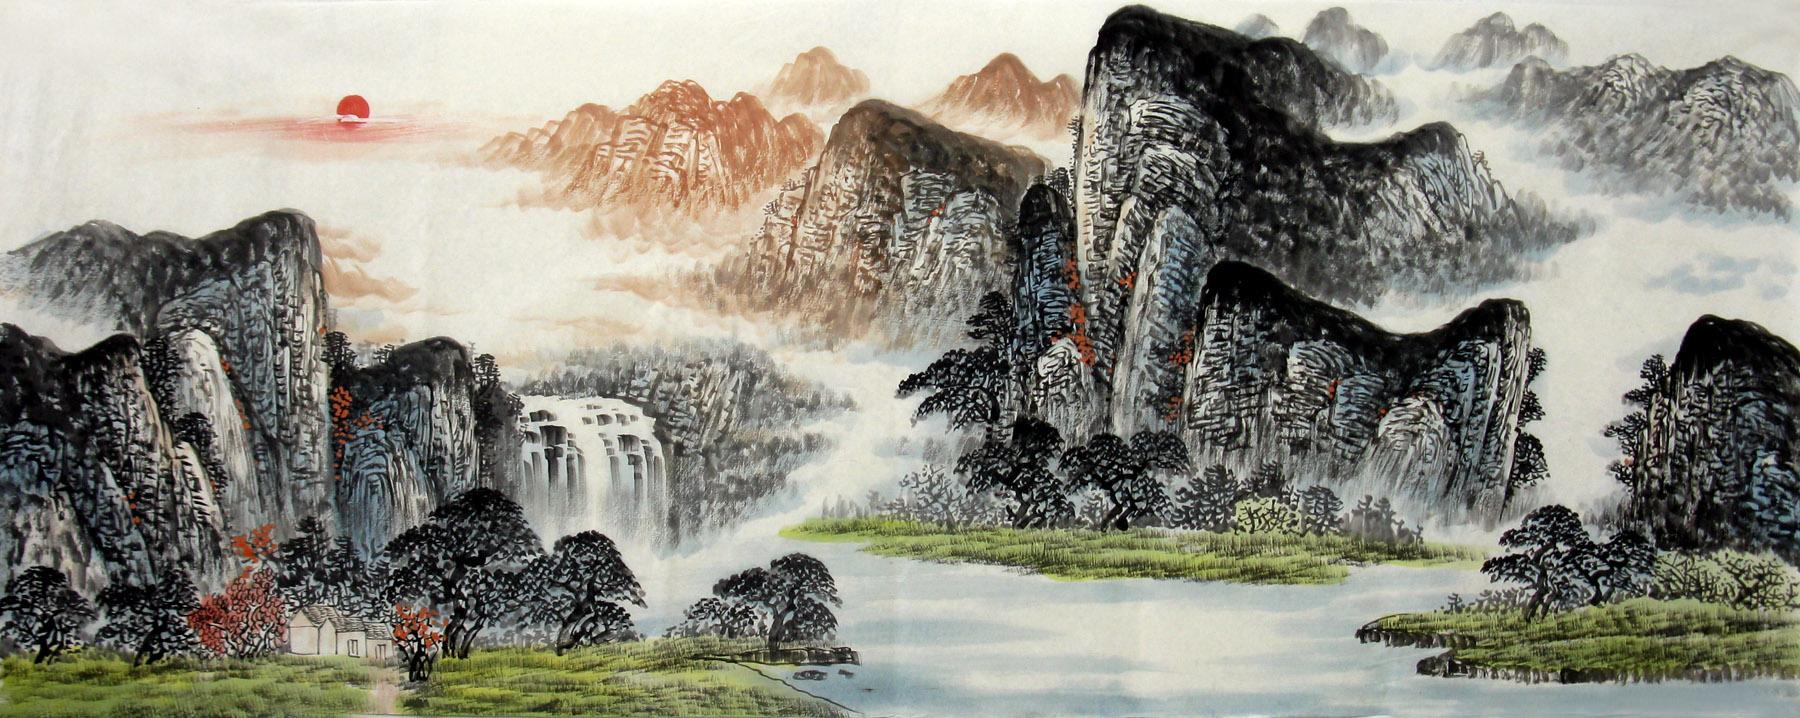 Chinese Traditional Painting-1